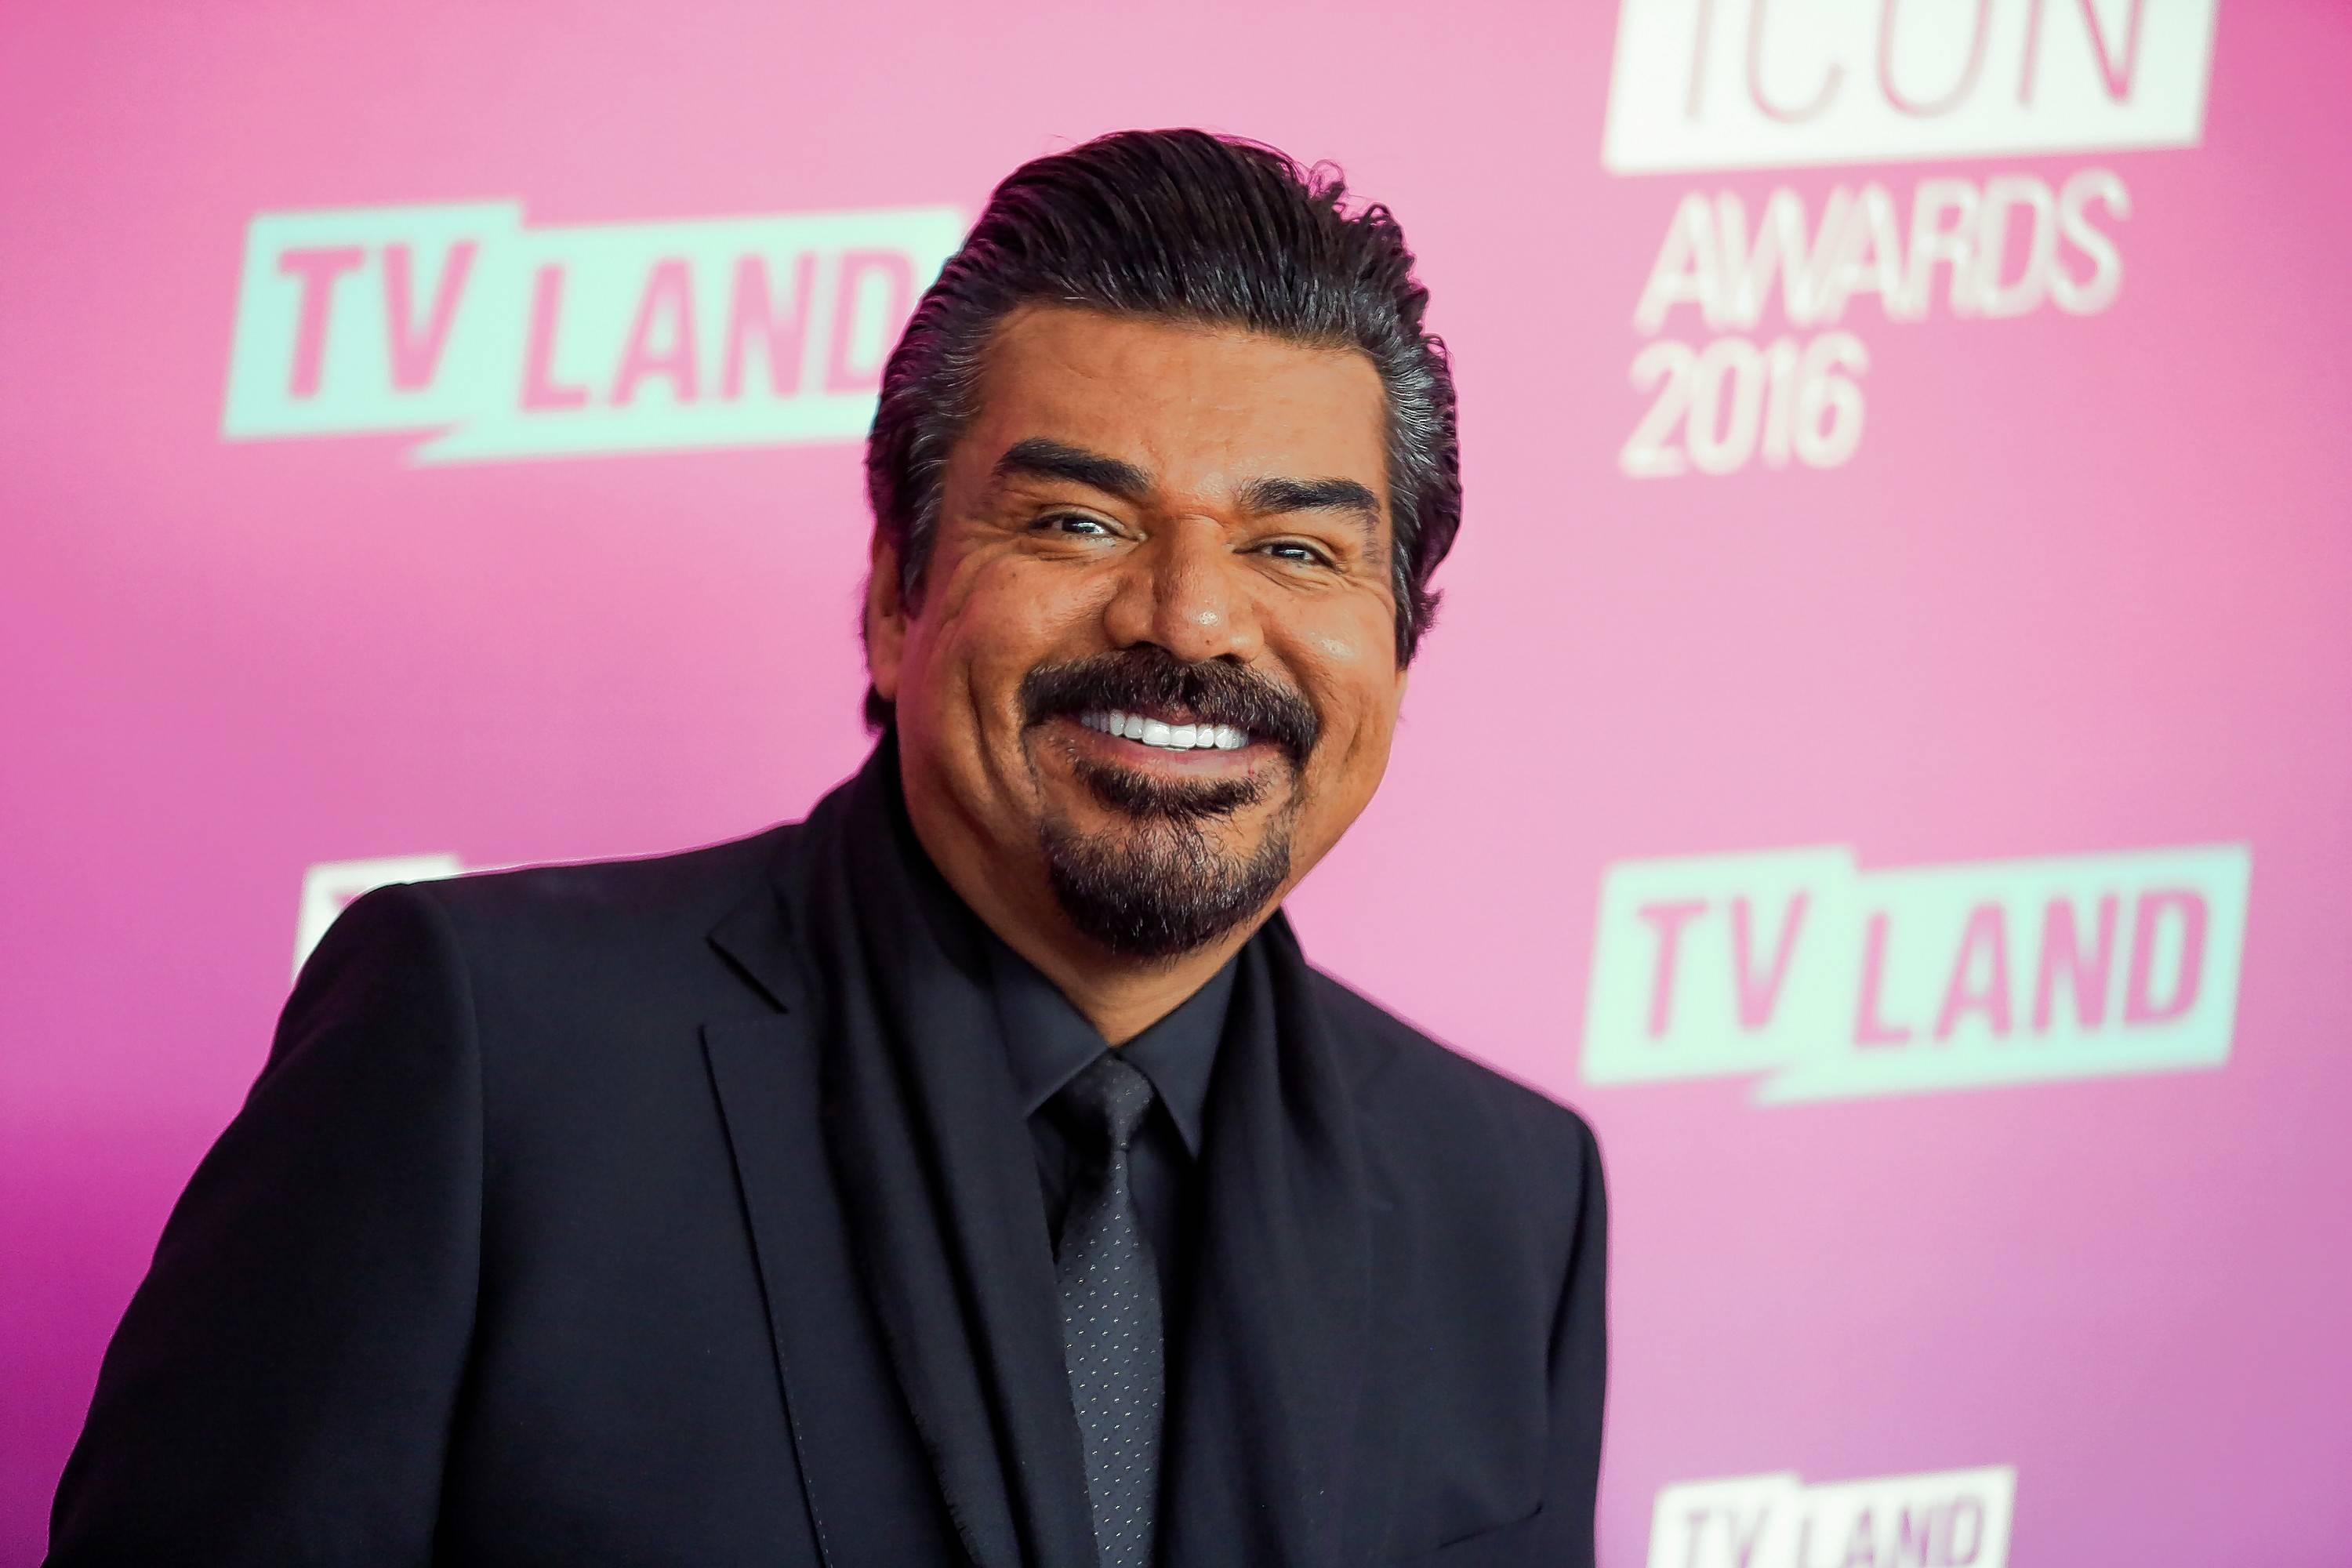 Comedian and actor George Lopez will headline on Friday, Nov. 18, at the Rosemont Theatre.